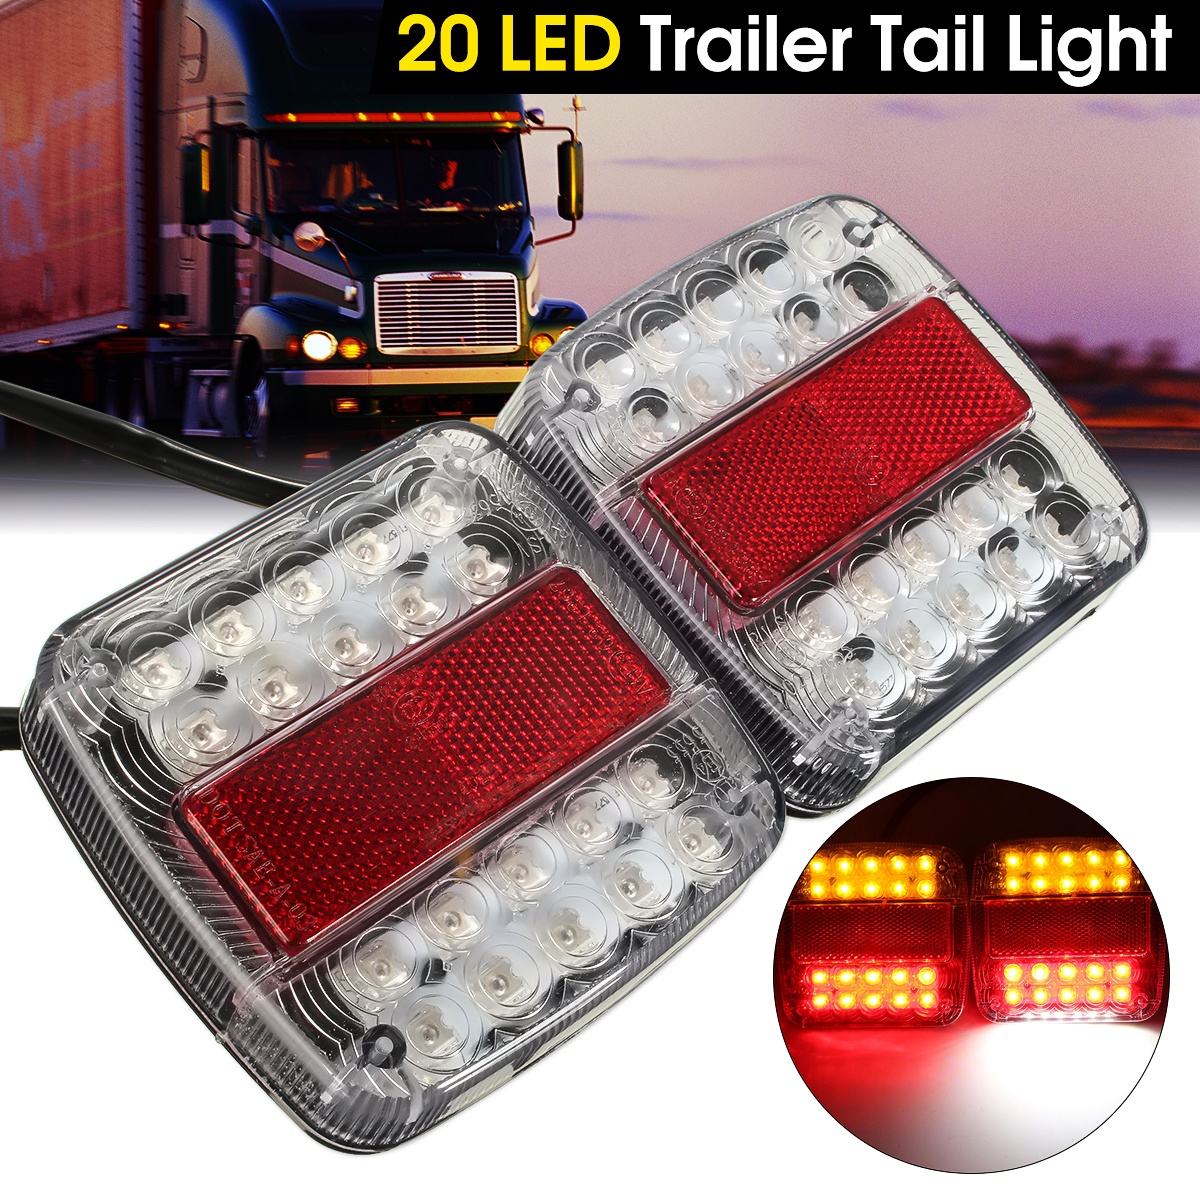 2x 12V 26 LED Taillight Turn Signal Light Rear Brake Stop Light Number License Plate Lamp For Car Truck Trailer E-Marked купить в Москве 2019